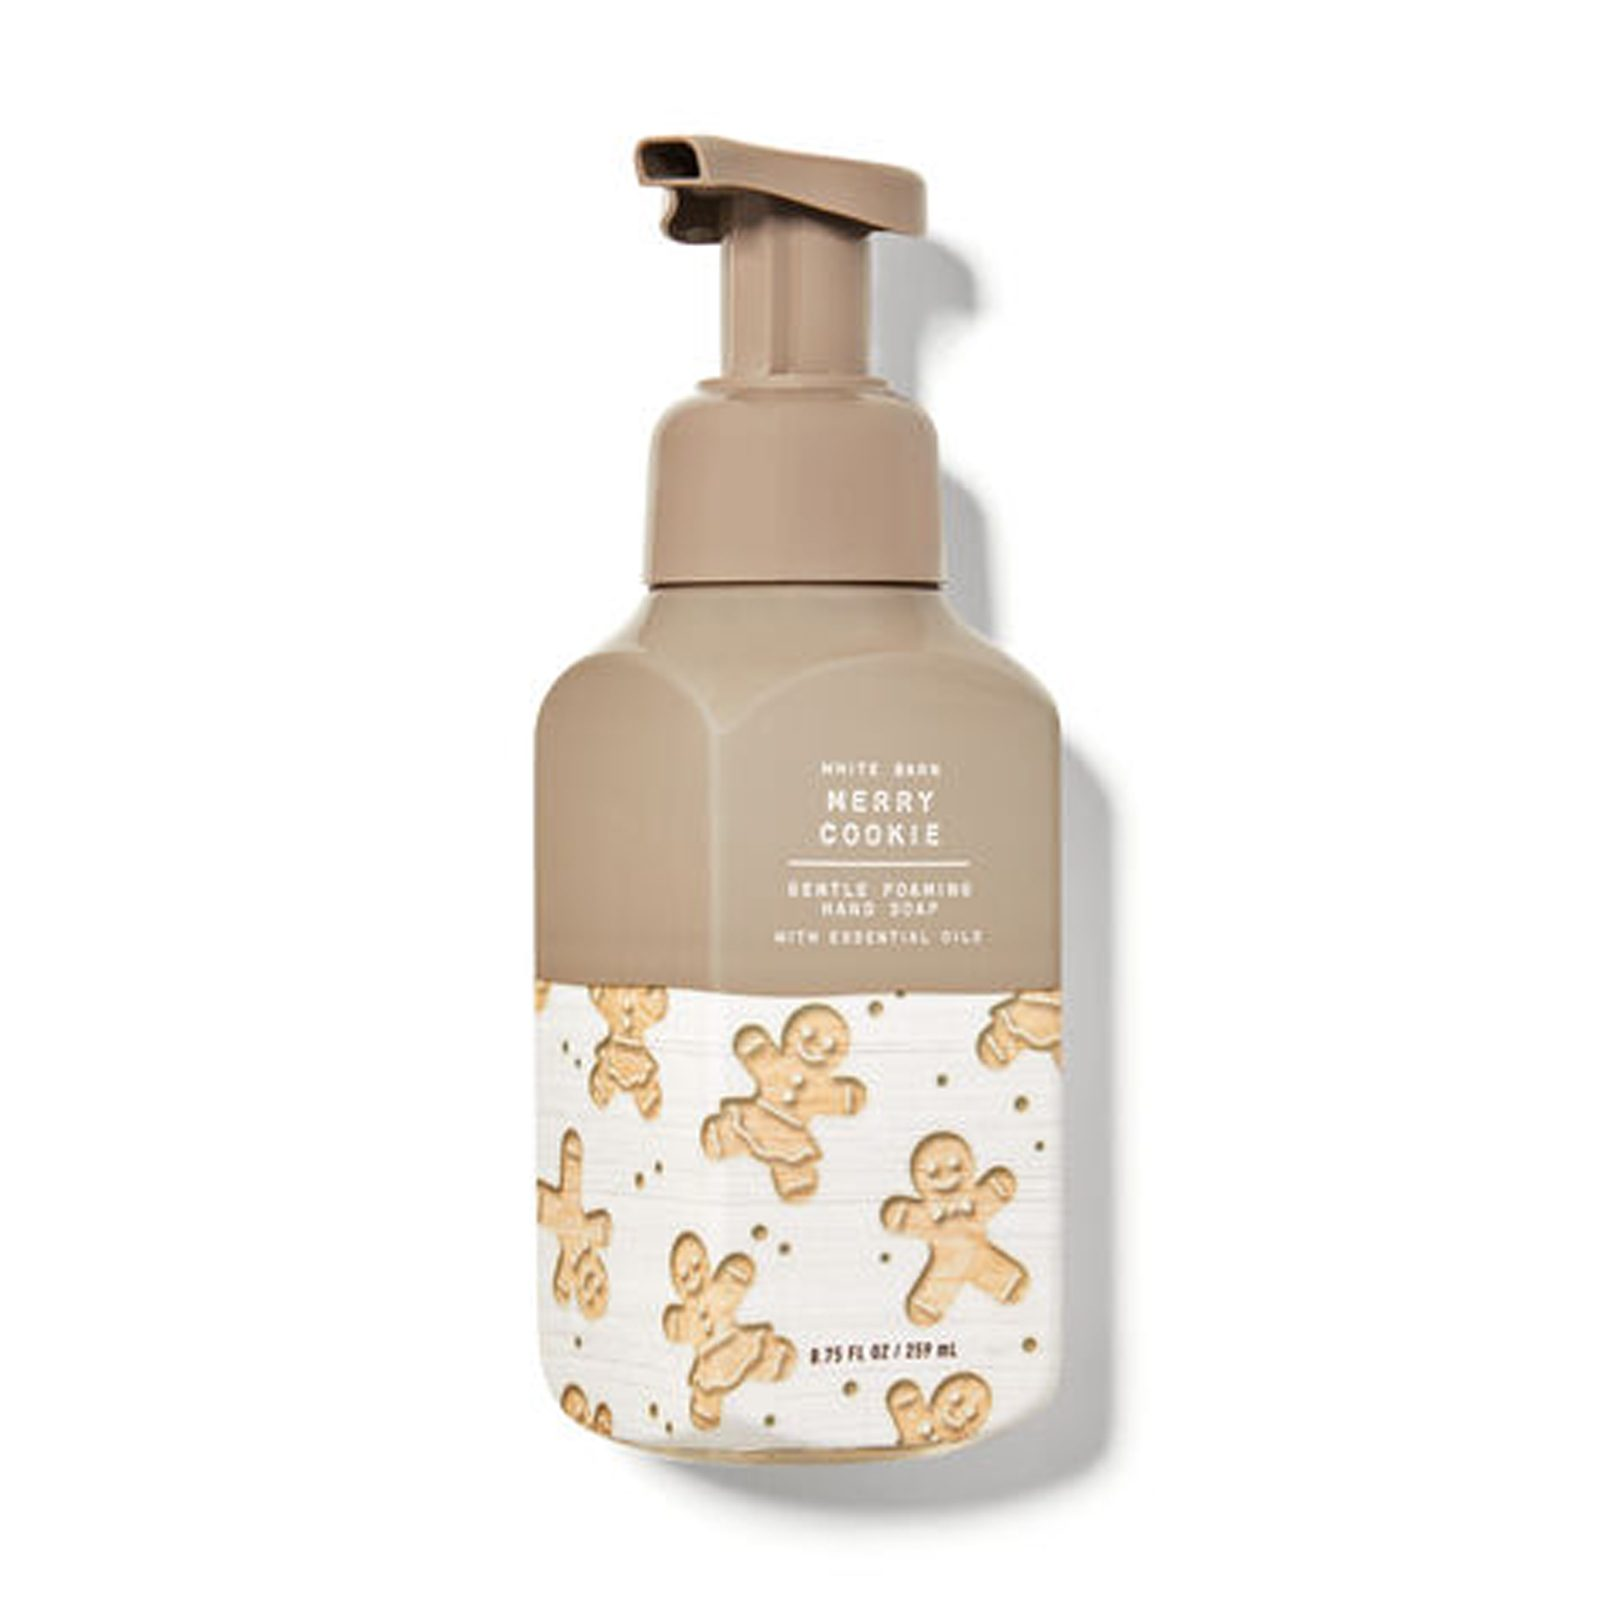 Bath & Body Works Merry Cookie Gentle Foaming Hand Soap